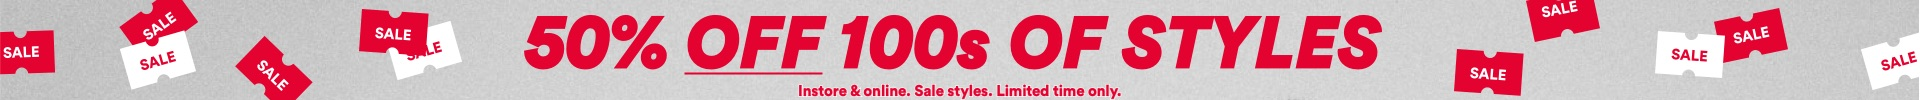 Cotton On Sale. Fifty percent off 100s of styles. Click to shop.